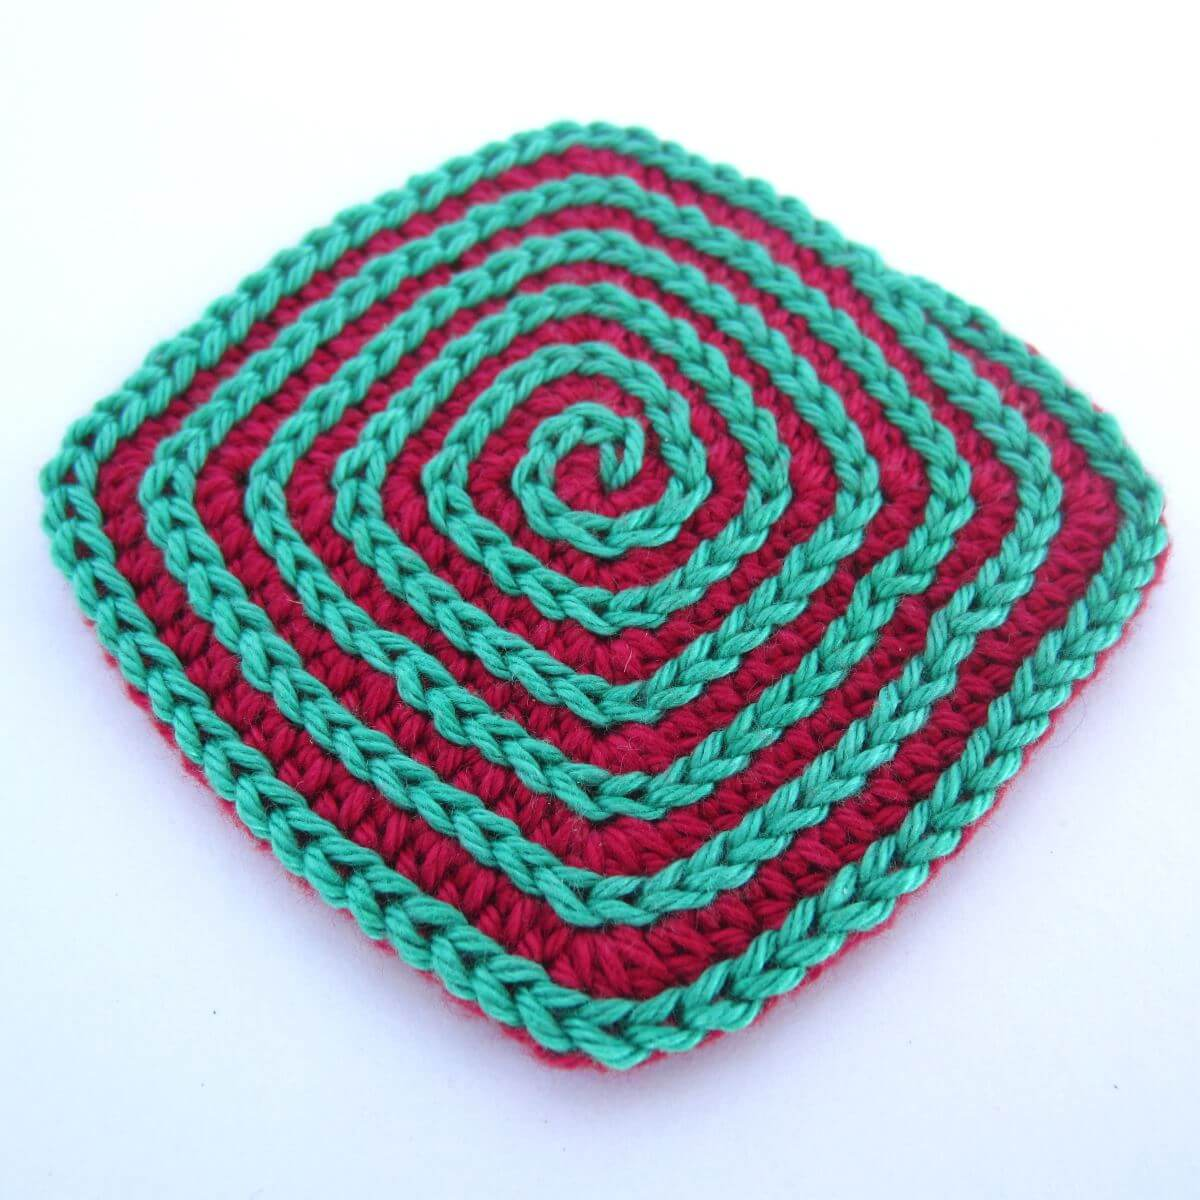 Square Crochet Coaster Featured Image